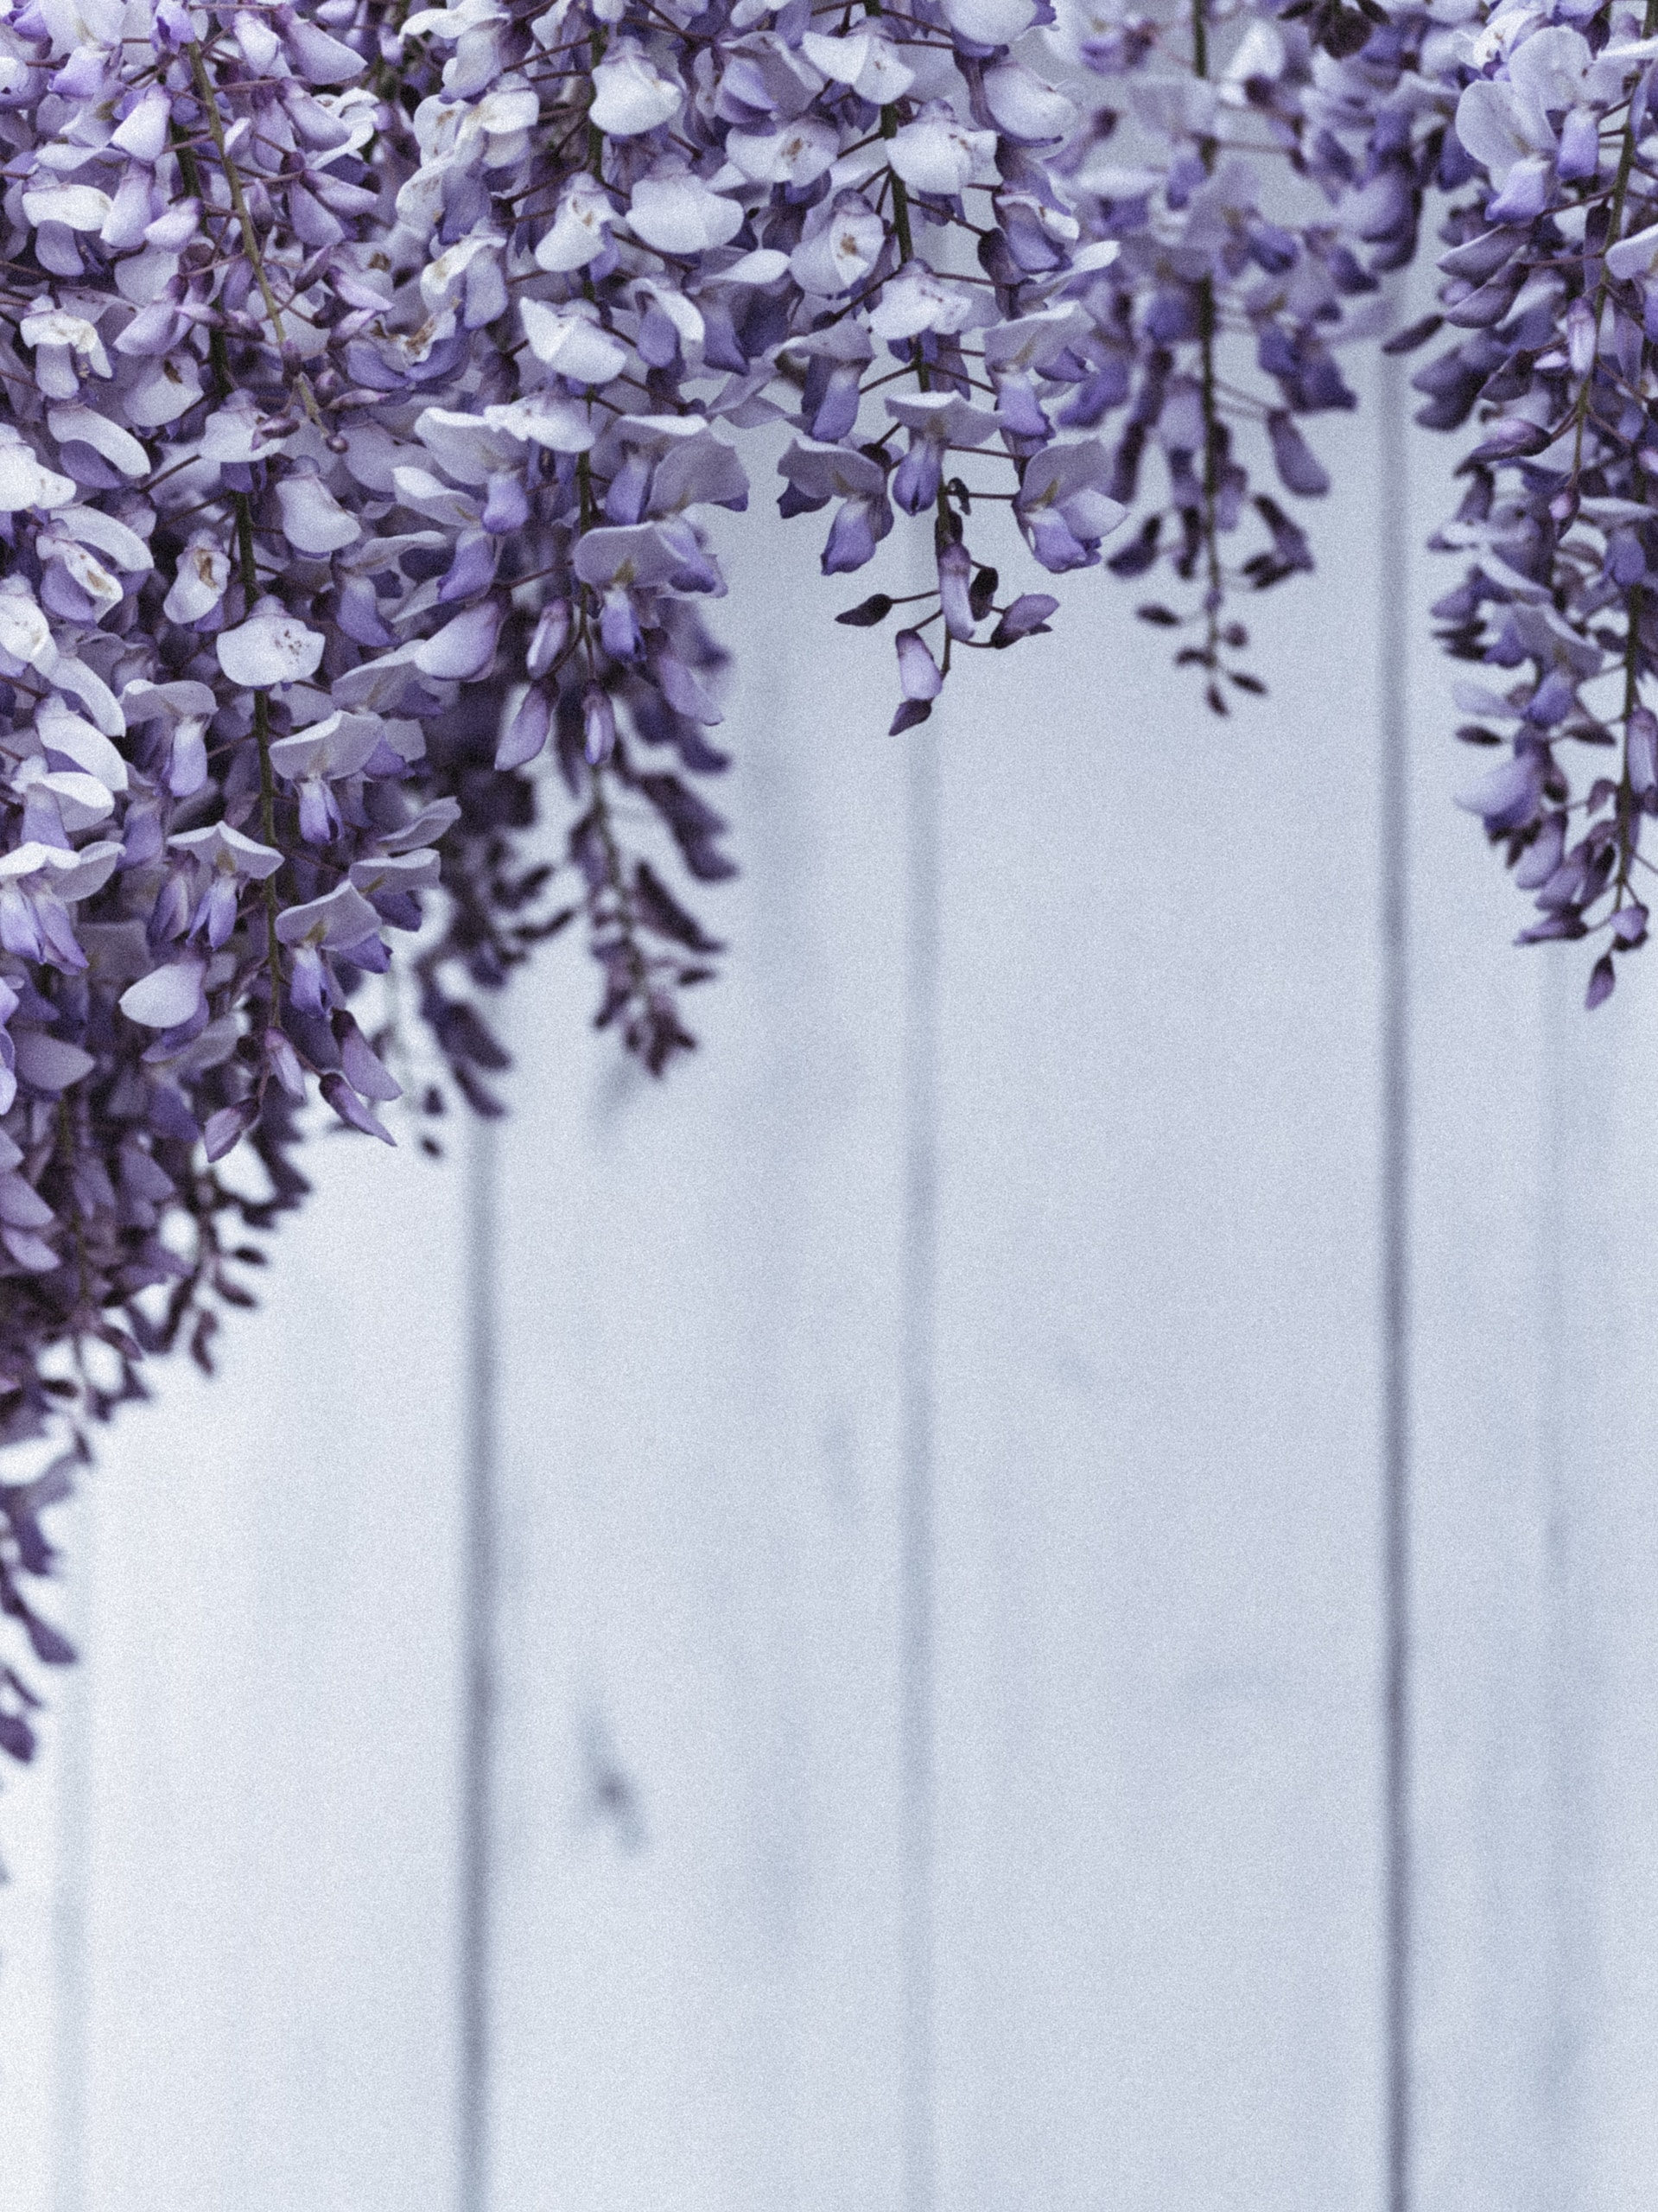 purple and white flowers on gray wooden fence